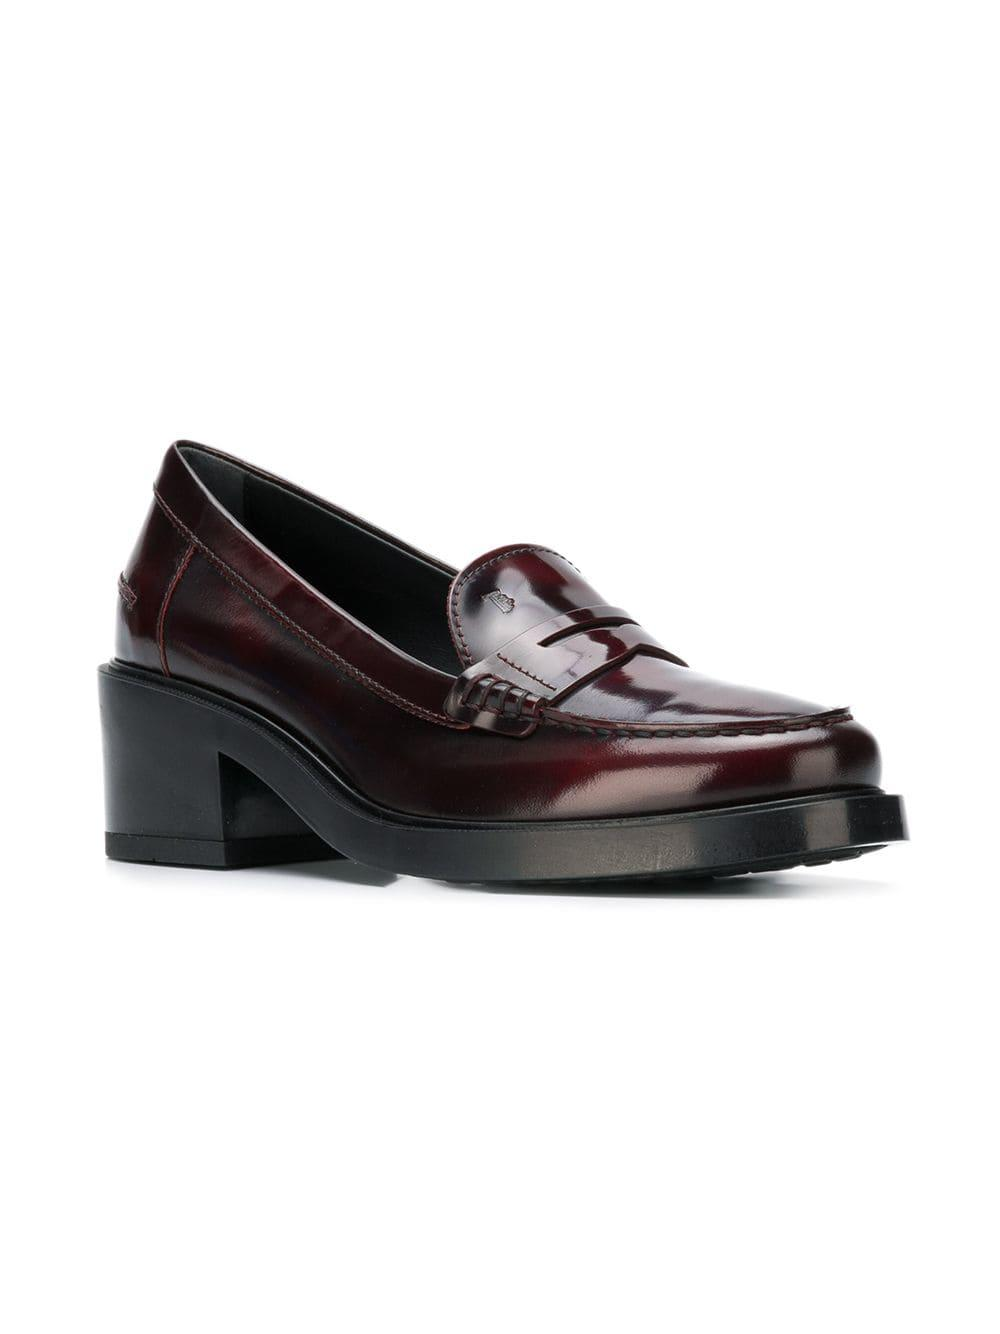 Tod's Leather Mid-heel Penny Loafers in Purple - Lyst